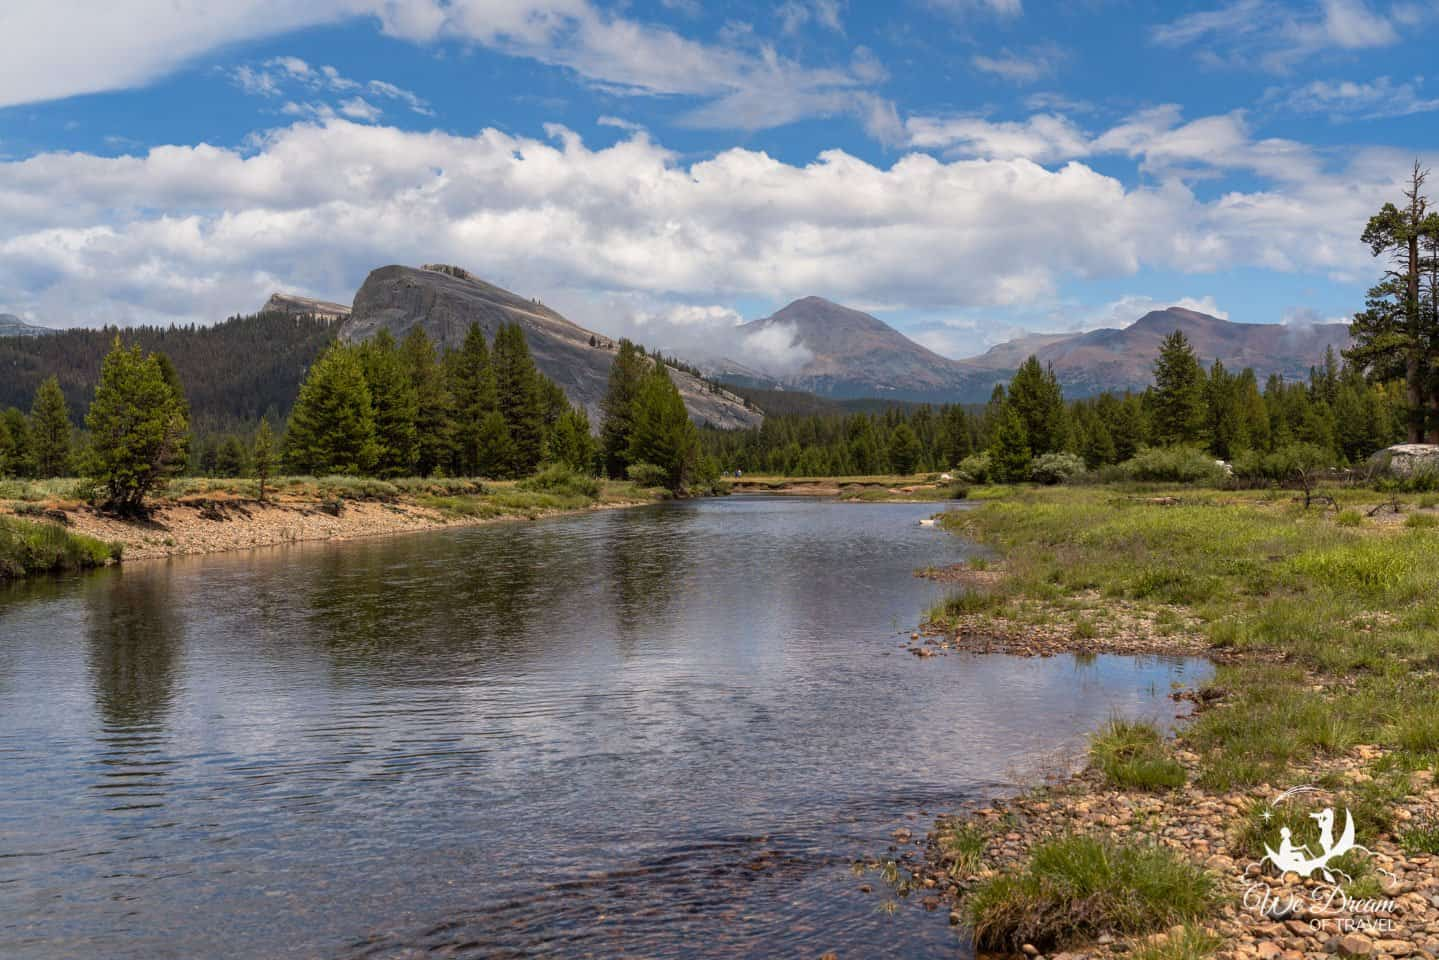 Landscape photography of the Tuolumne Meadows on a three day itinerary for Yosemite NP.